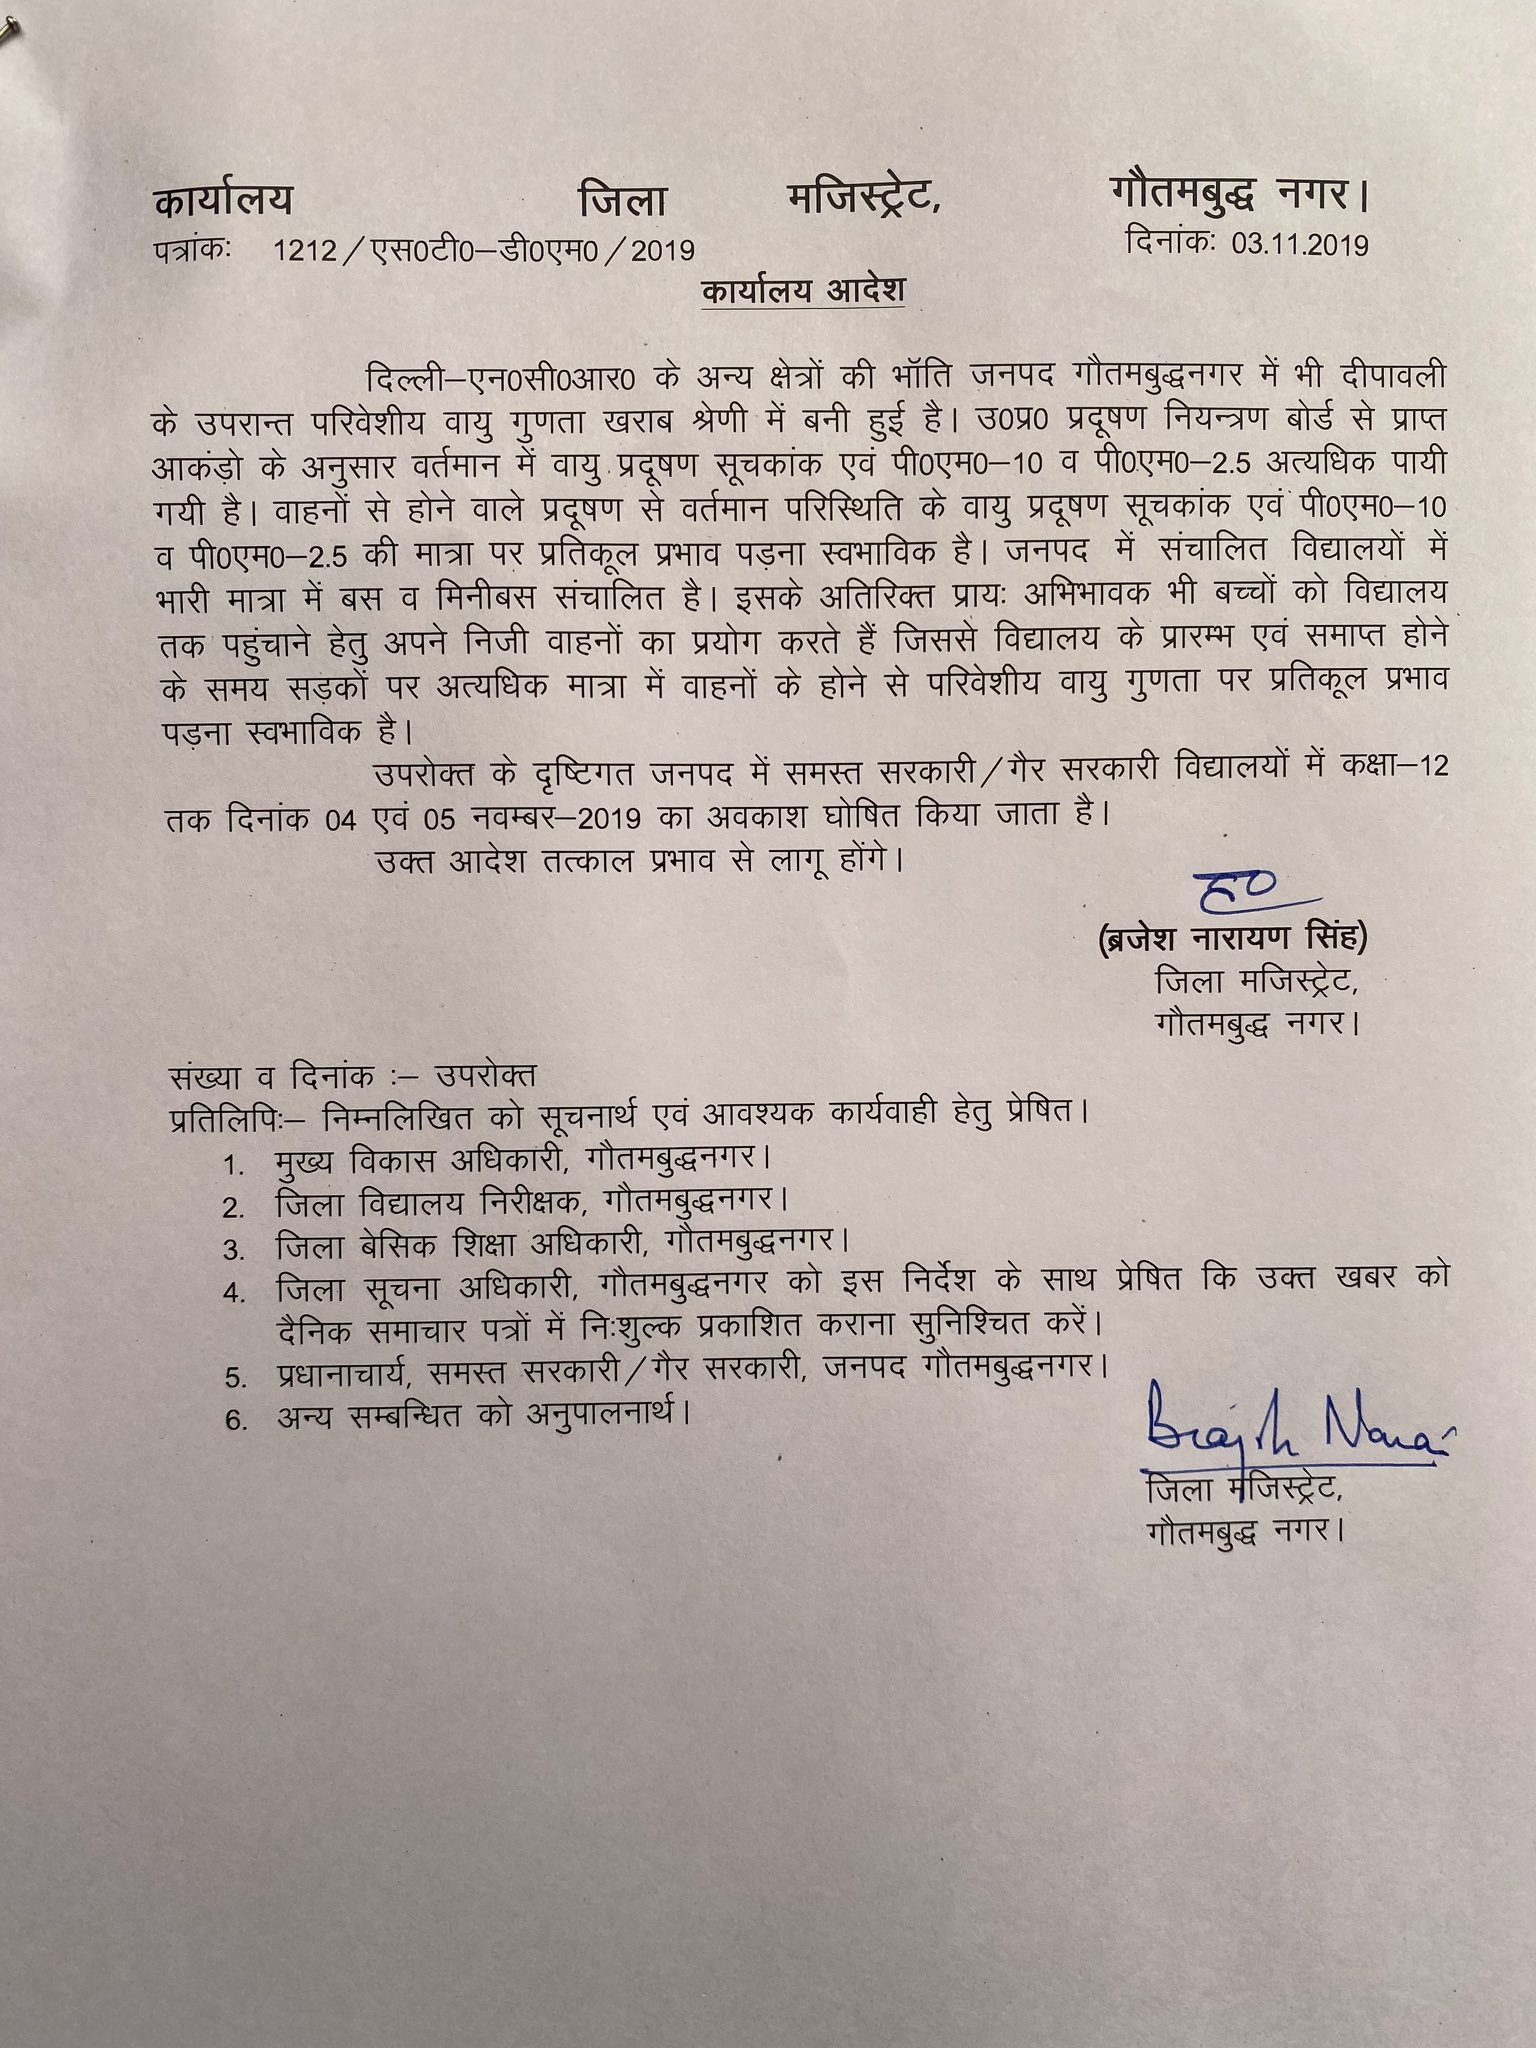 DM letter on shutting down schools in Noida due to air pollution